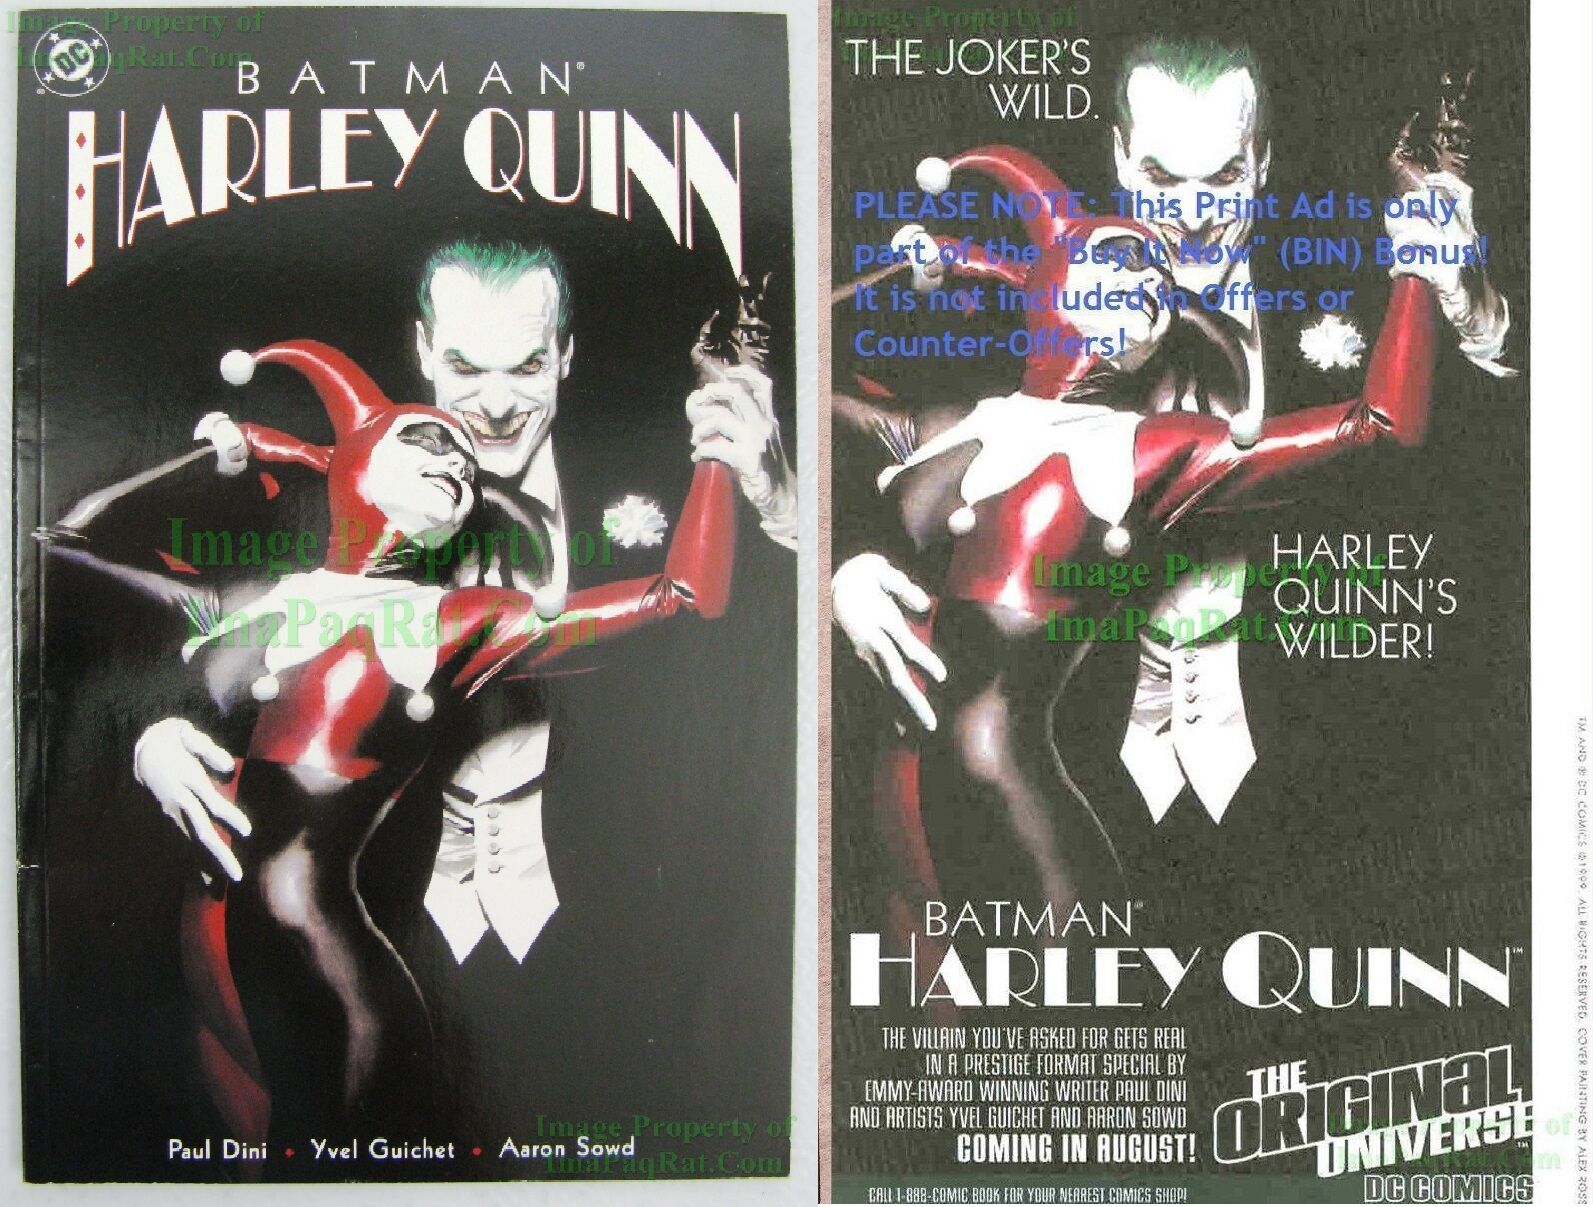 HARLEY QUINN #18 ORIGINAL SERIES HTF SEE MY OTHERS!